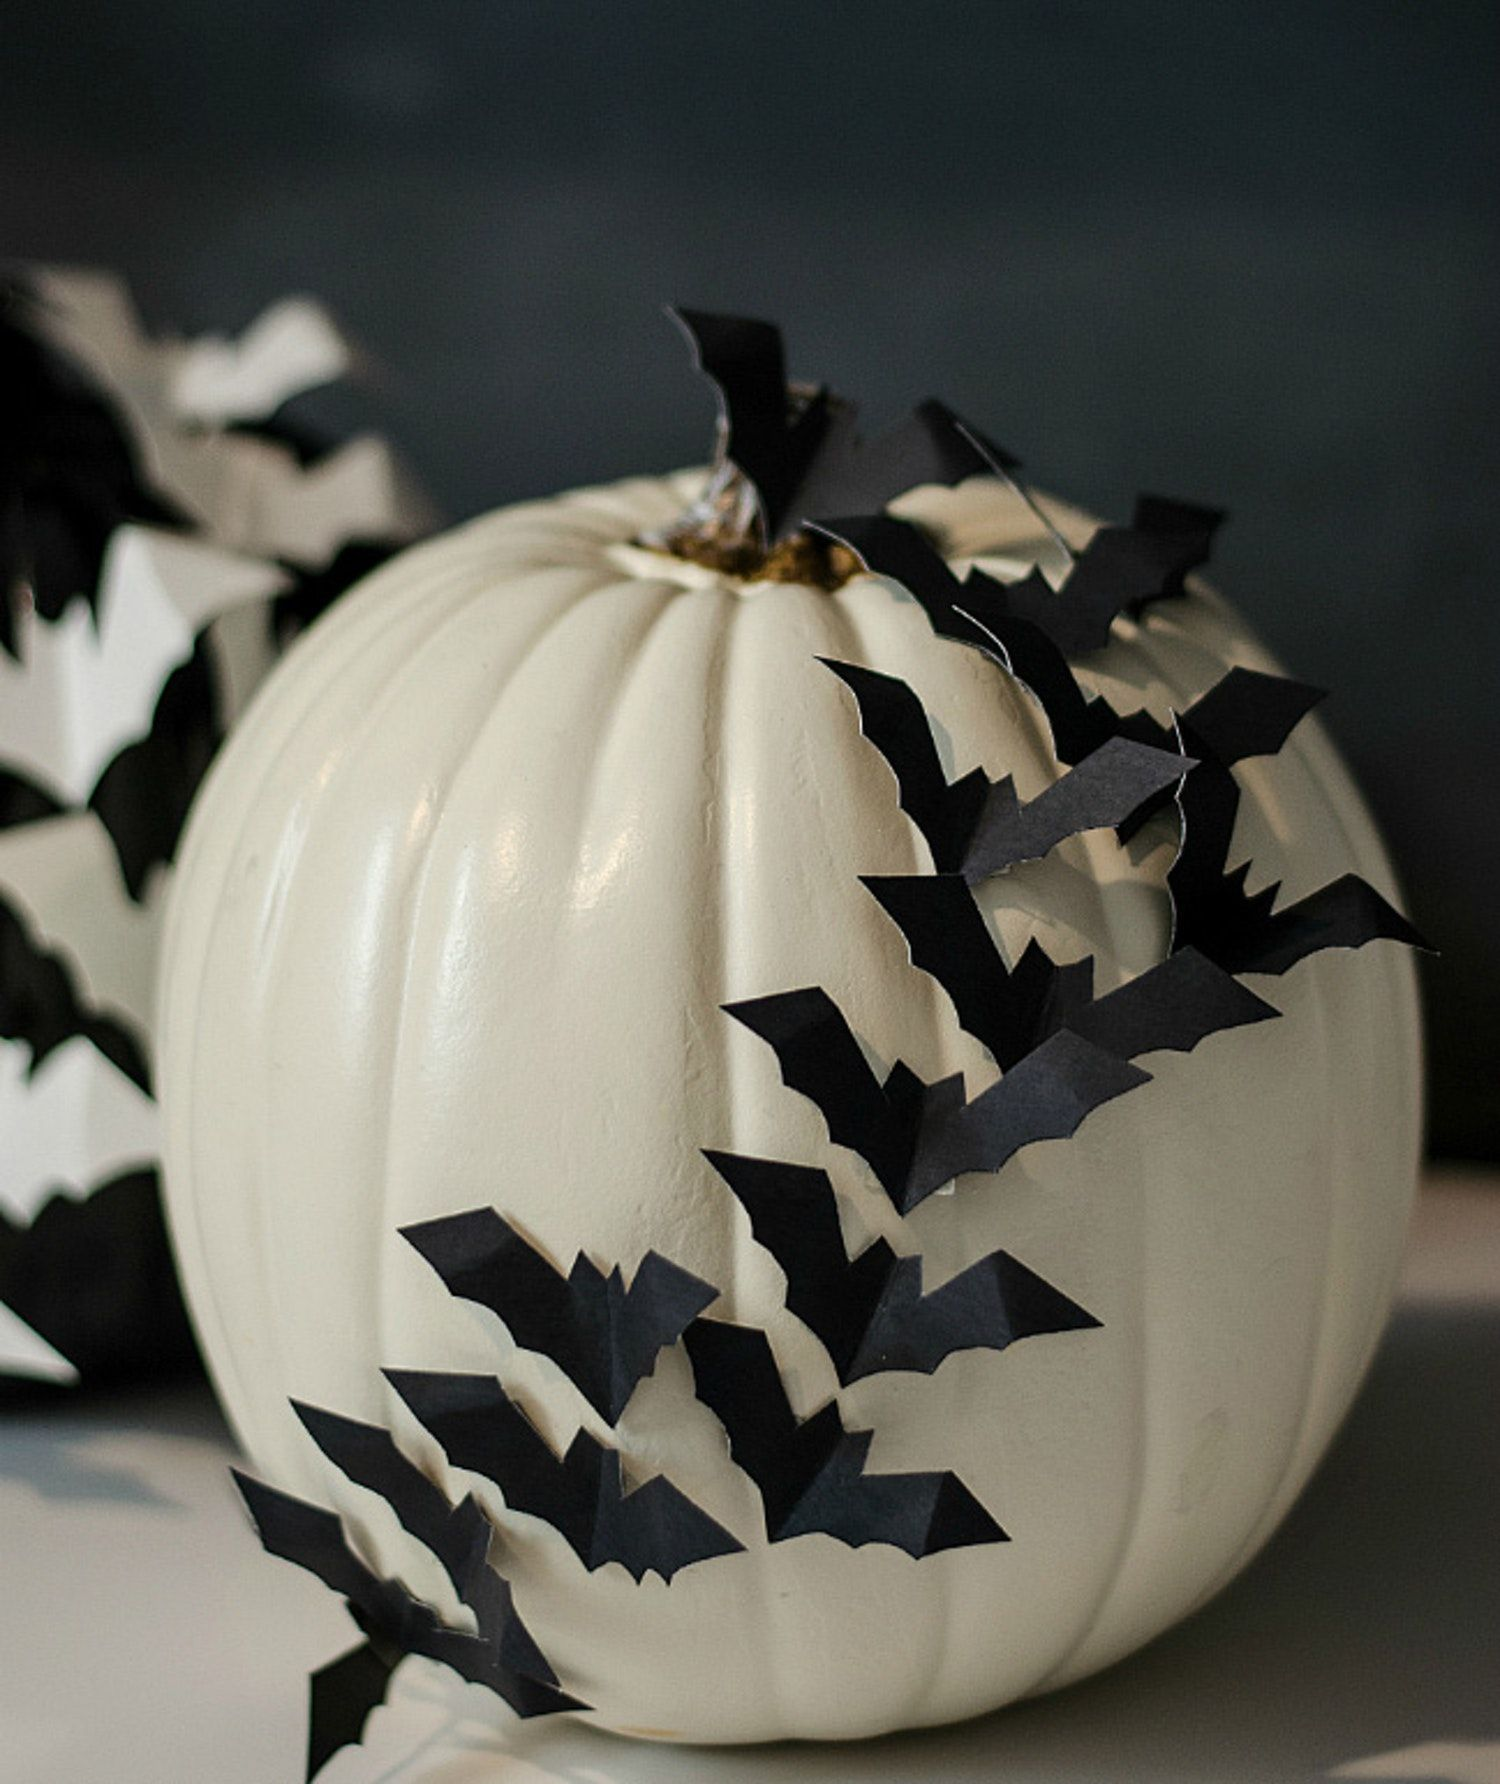 Lucky 13 Halloween Decorations You Can Make in 30 Minutes or Less - How To Make Halloween Decorations